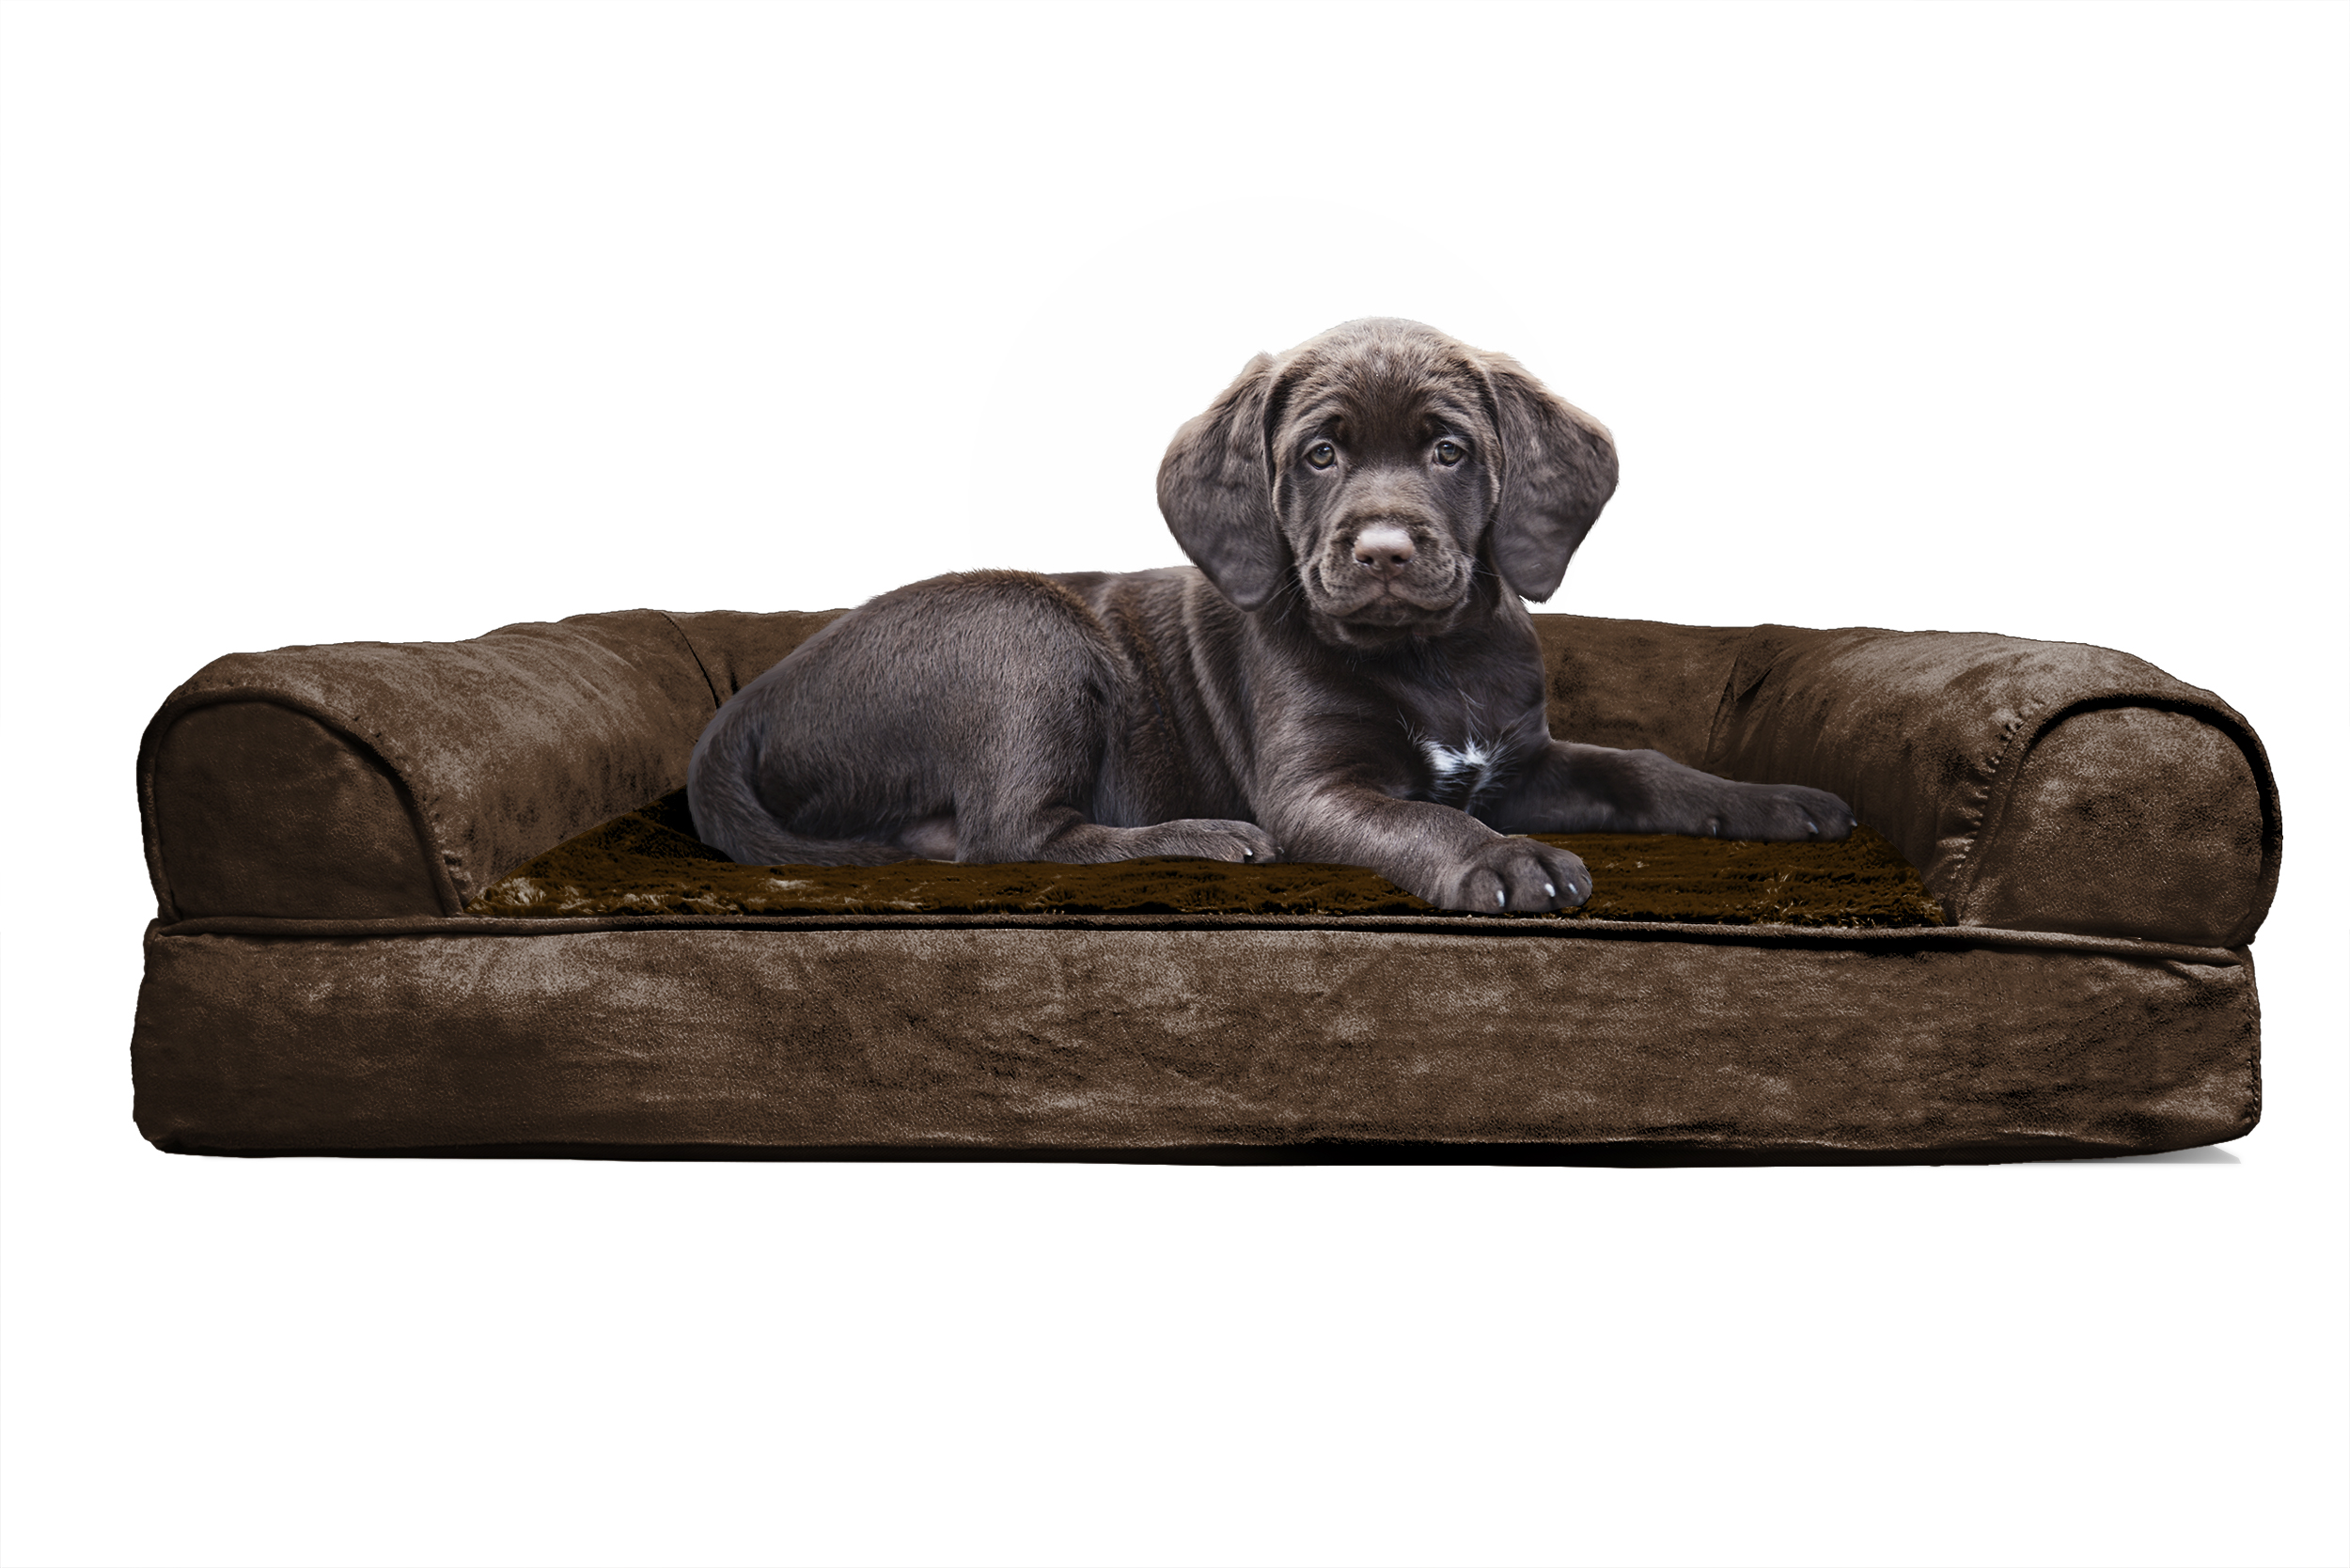 mini dog sofa king bed reviews small 25 unique ideas on pinterest